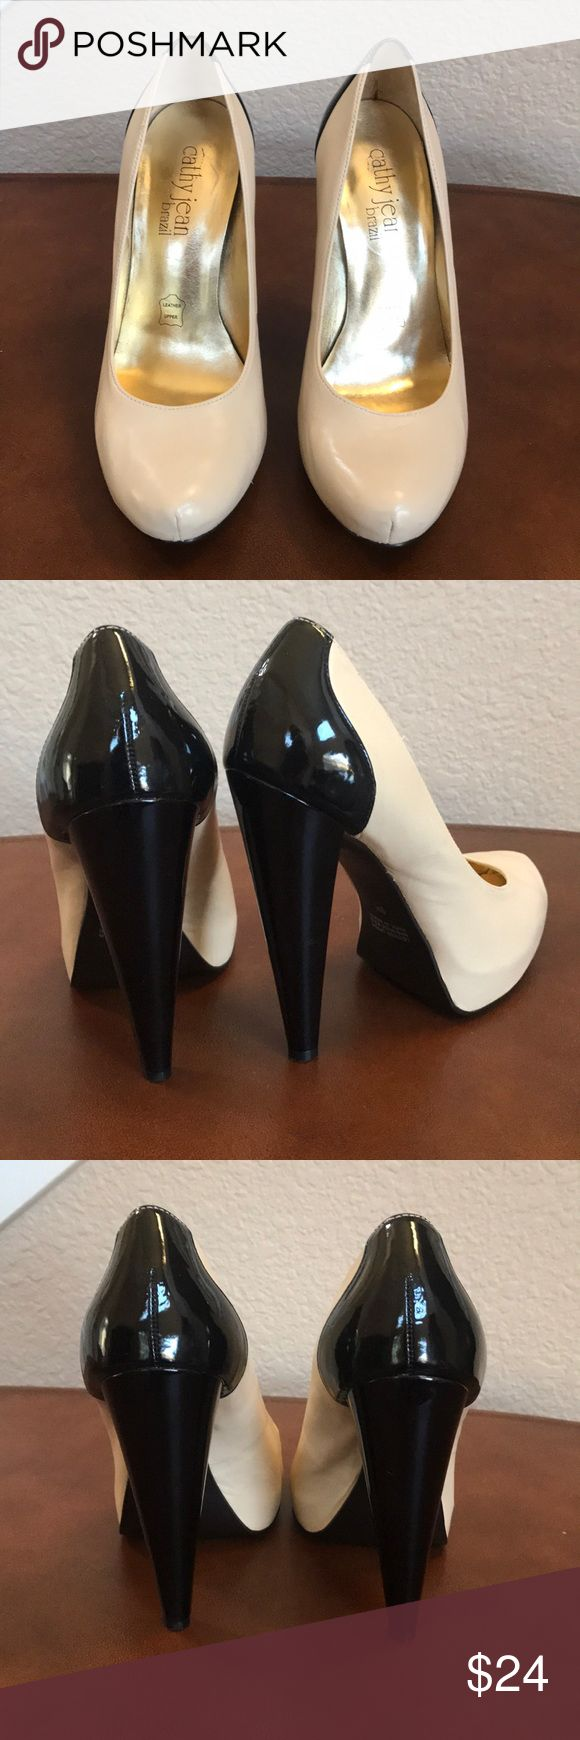 Cathy Jean Platform Pumps Gently used creme and black leather platform pumps. Signs of wear pictured, but still in good condition.   Heel height: 5 Cathy Jean Shoes Platforms